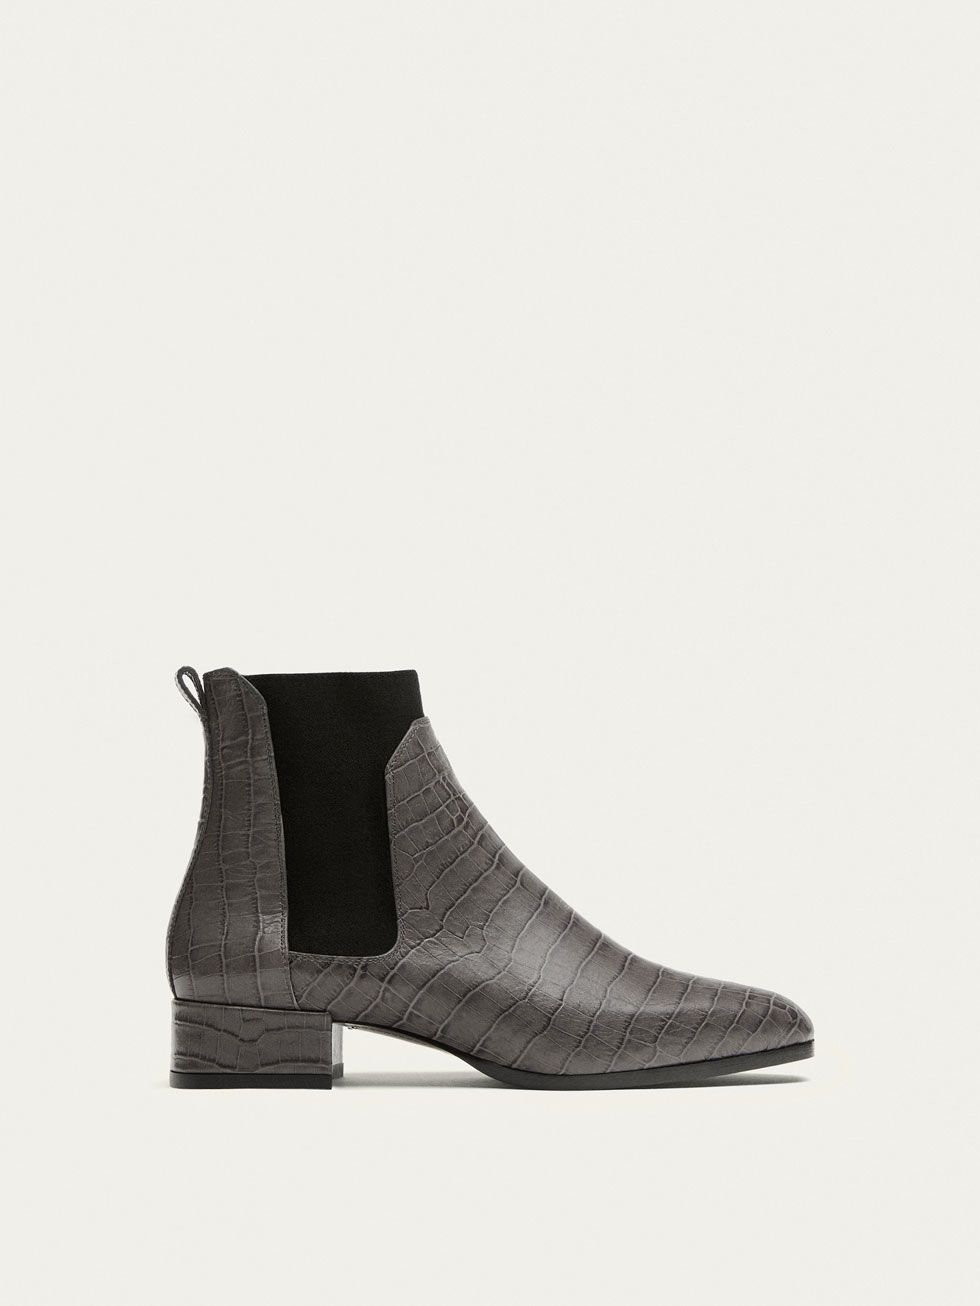 870e7d638351 Fall Winter 2017 Women´s GREY LEATHER STRETCH ANKLE BOOTS WITH ANIMAL PRINT  at Massimo Dutti for 129. Effortless elegance!